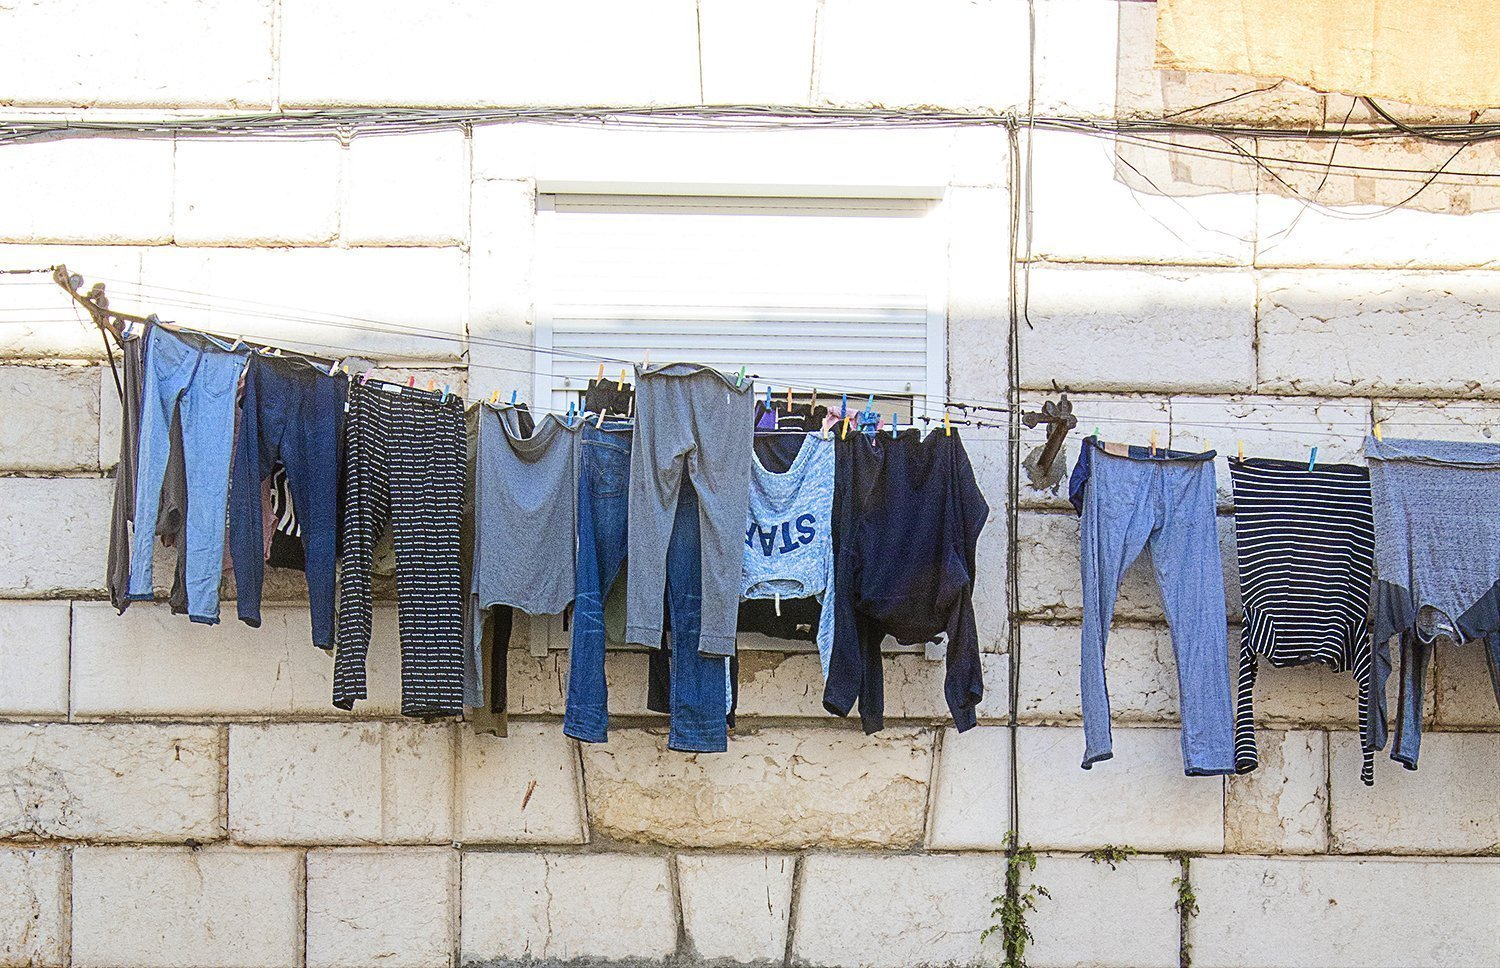 Hanging laundry outside a Portugal apartment.